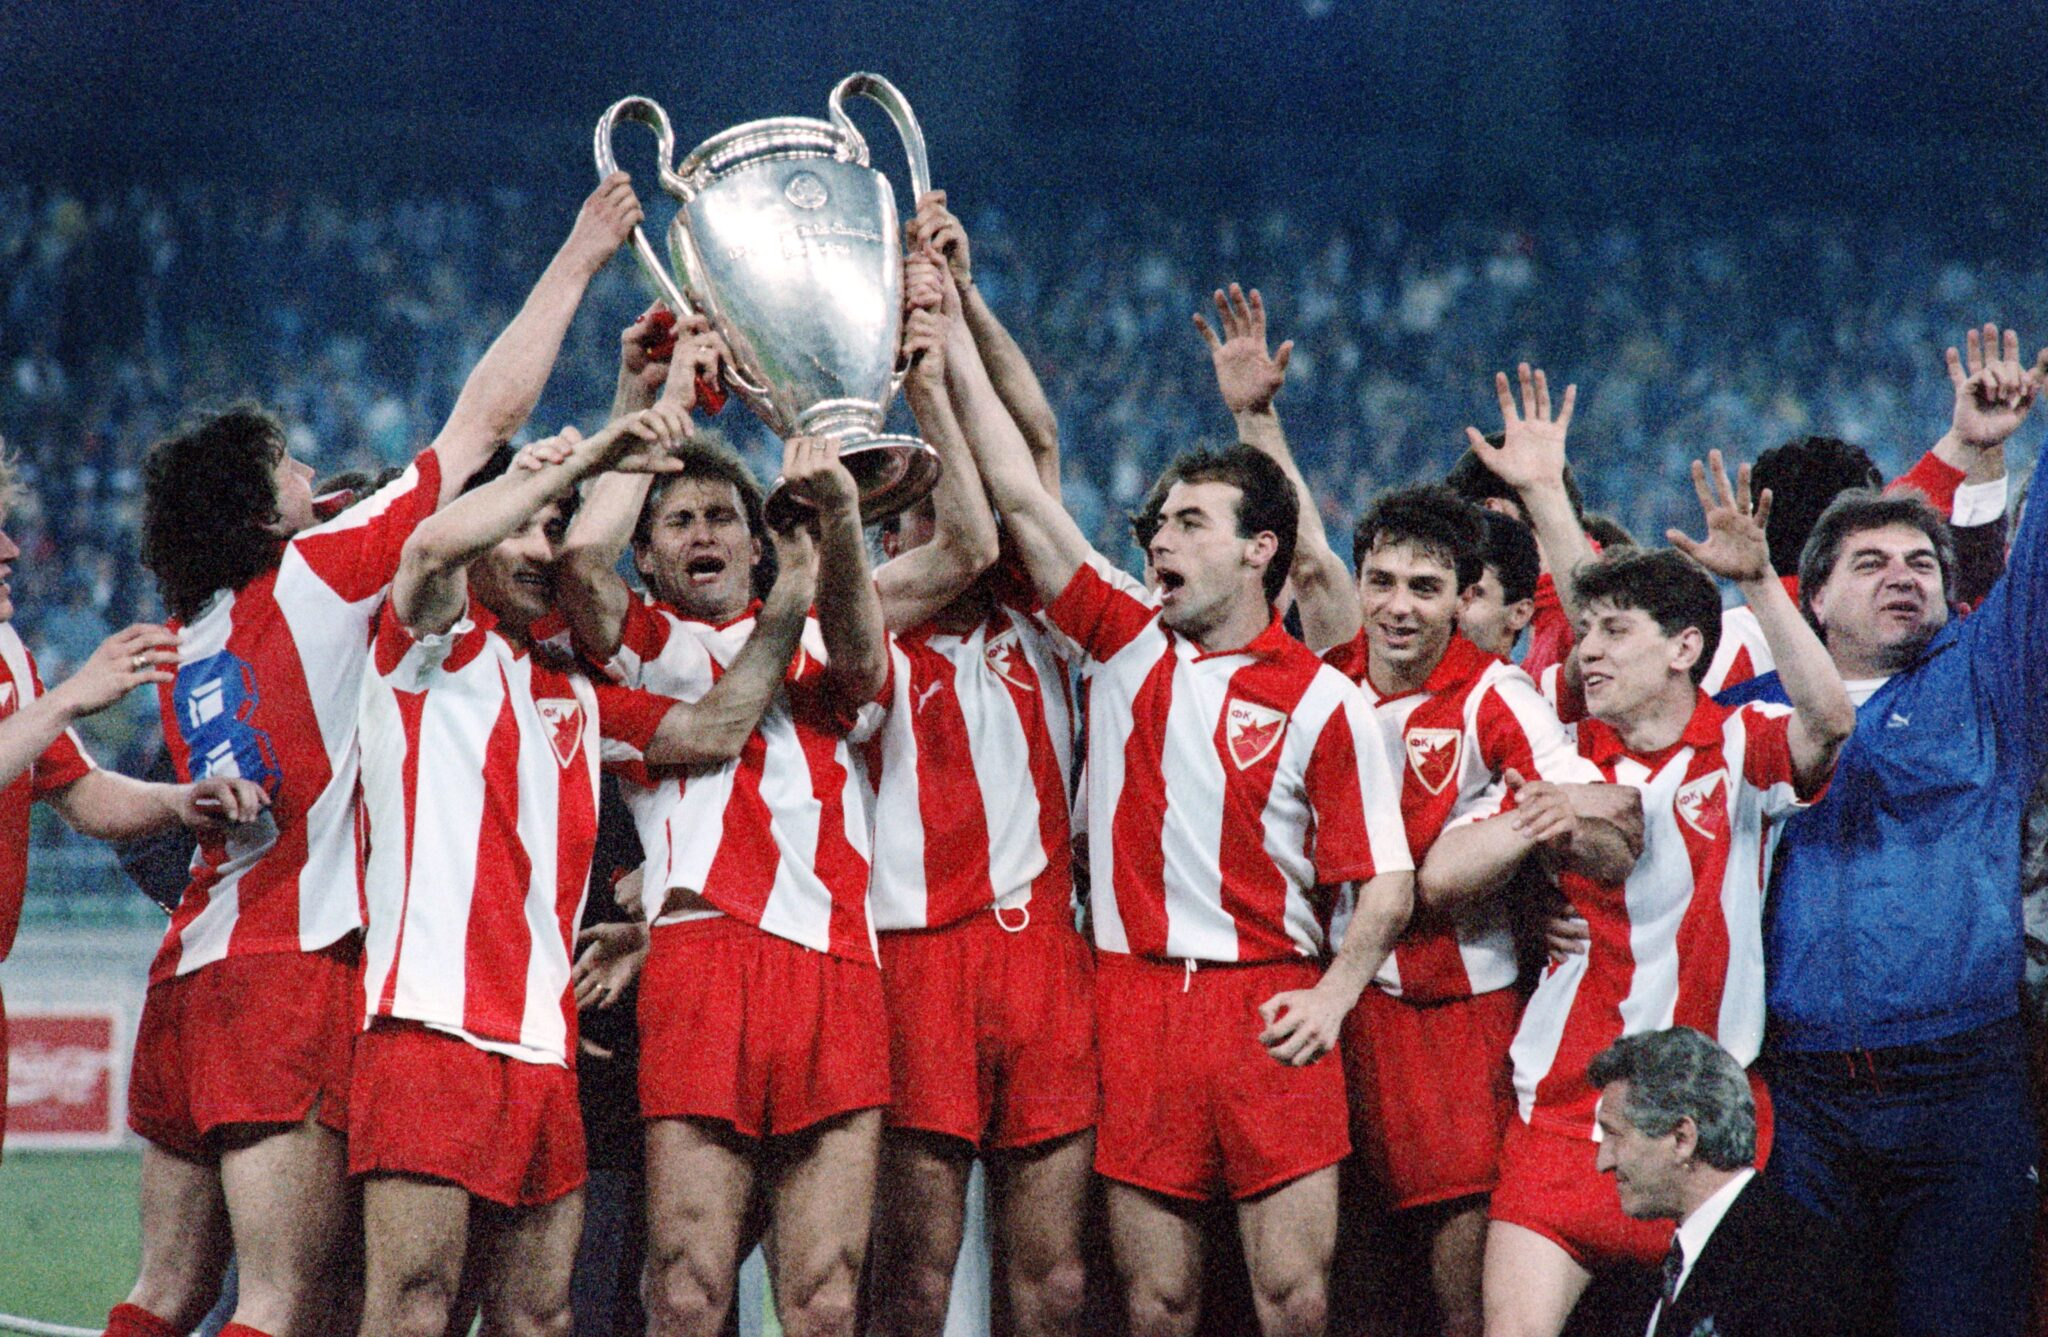 Stella Rossa 1991 - Foto Jacques Demarthon Patrick Hertzog AFP via Getty Images OneFootball